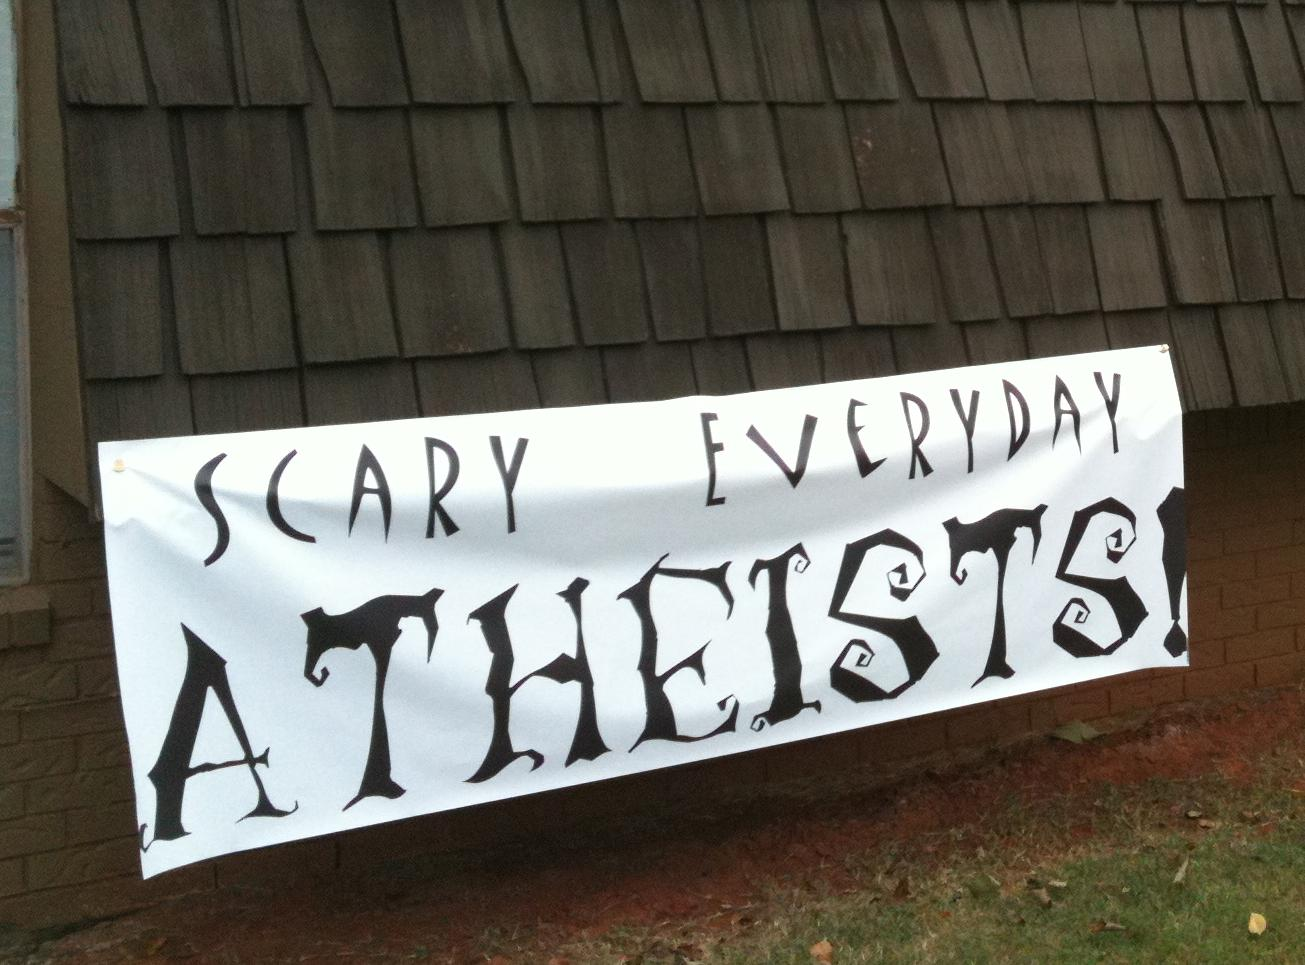 """[""""Scary Everyday Atheists"""" banner on the side of a house]"""